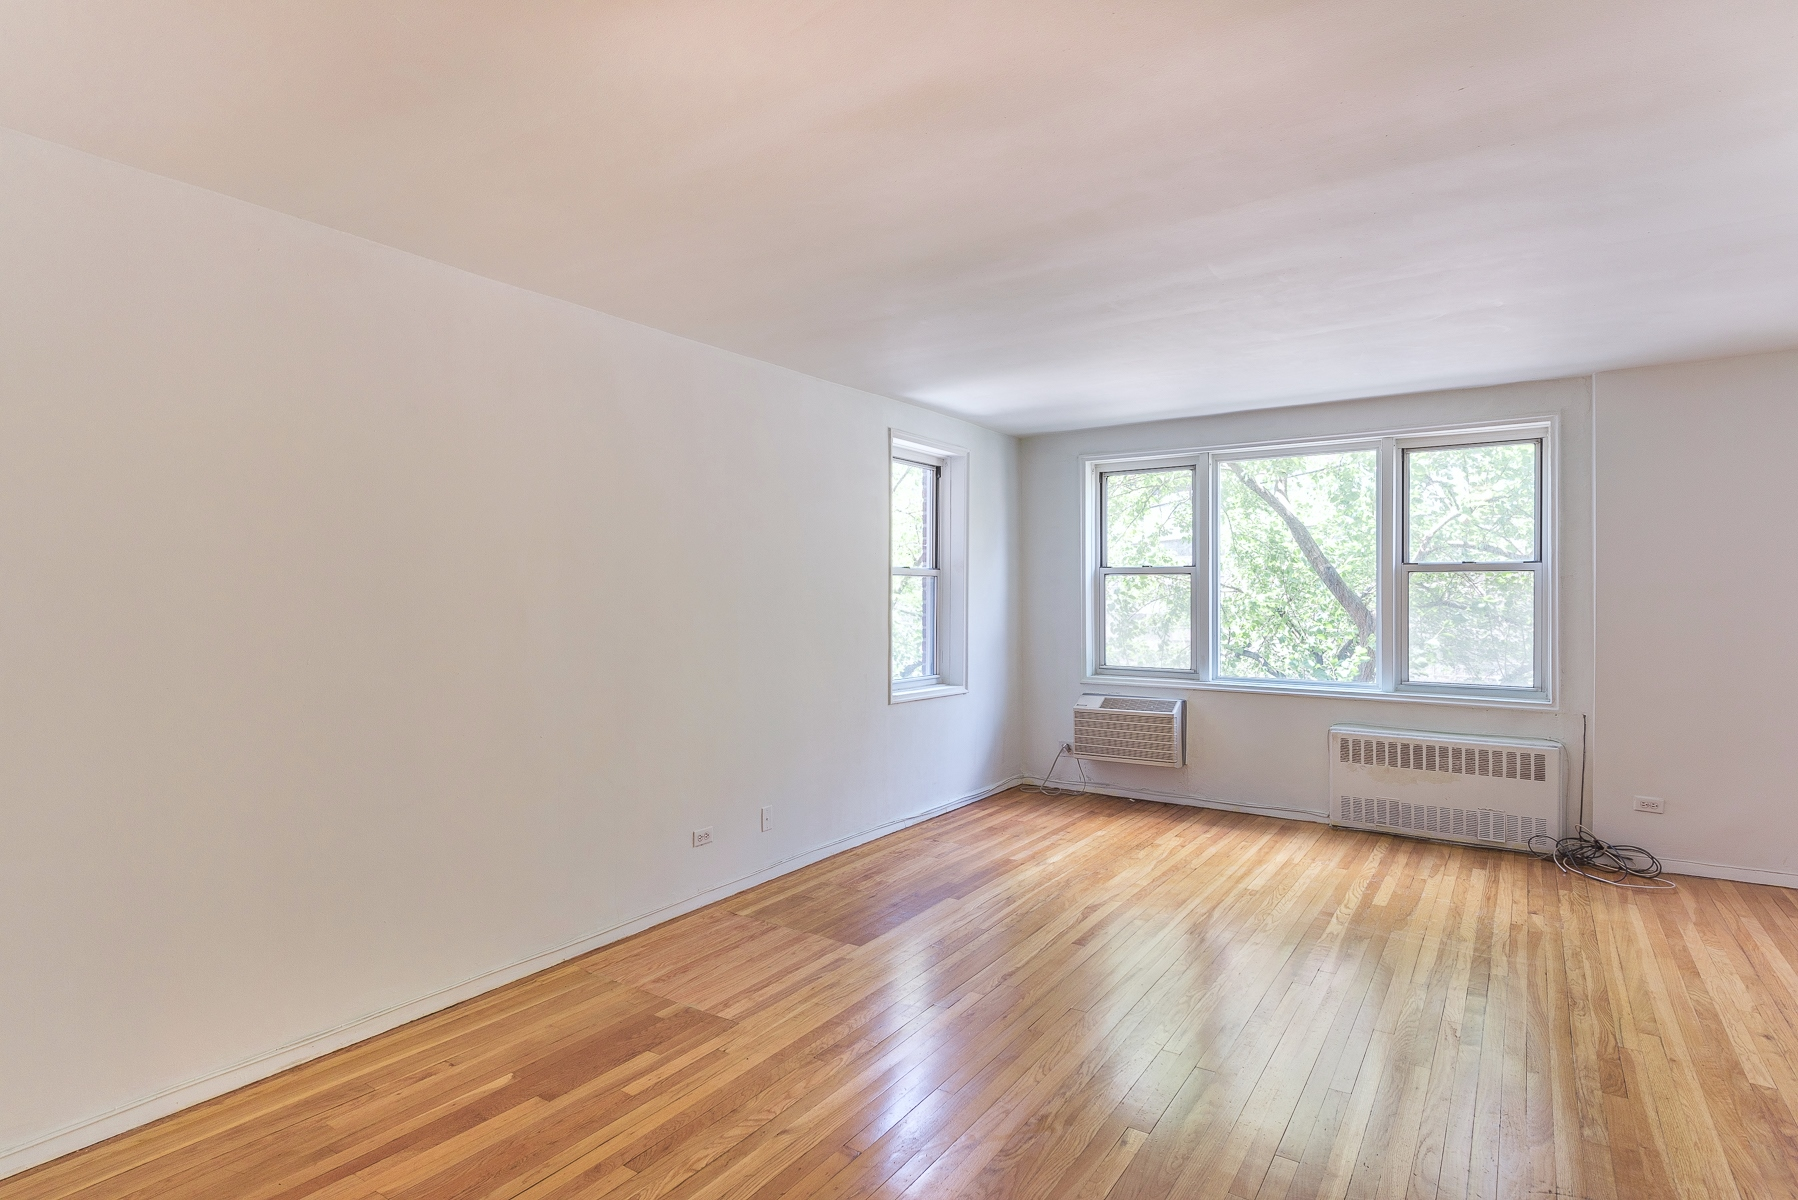 Co-op for Sale at New to Market - Large Alcove Studio 3475 Greystone Avenue 3F Riverdale, New York 10463 United States